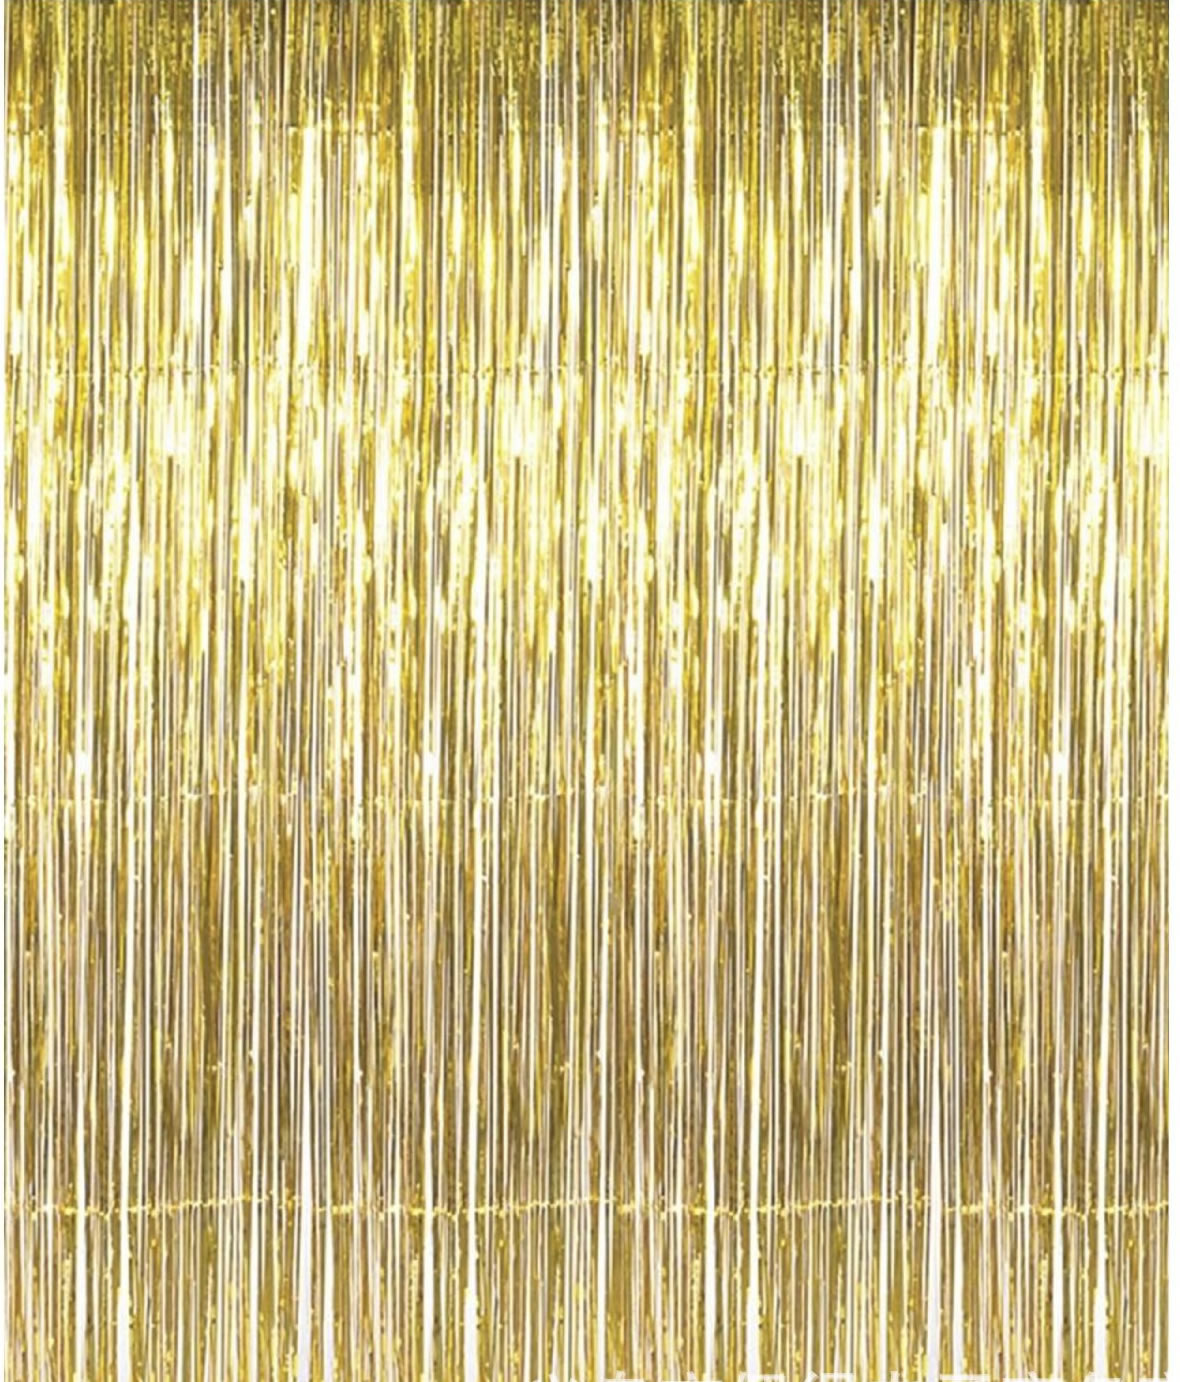 Curtains texture gold - Aliexpress Com Buy Golden Silver Laser Rain Curtain Silk Curtain Thick Rain Curtain Decoration Decorative Venue Layout Photography Background From